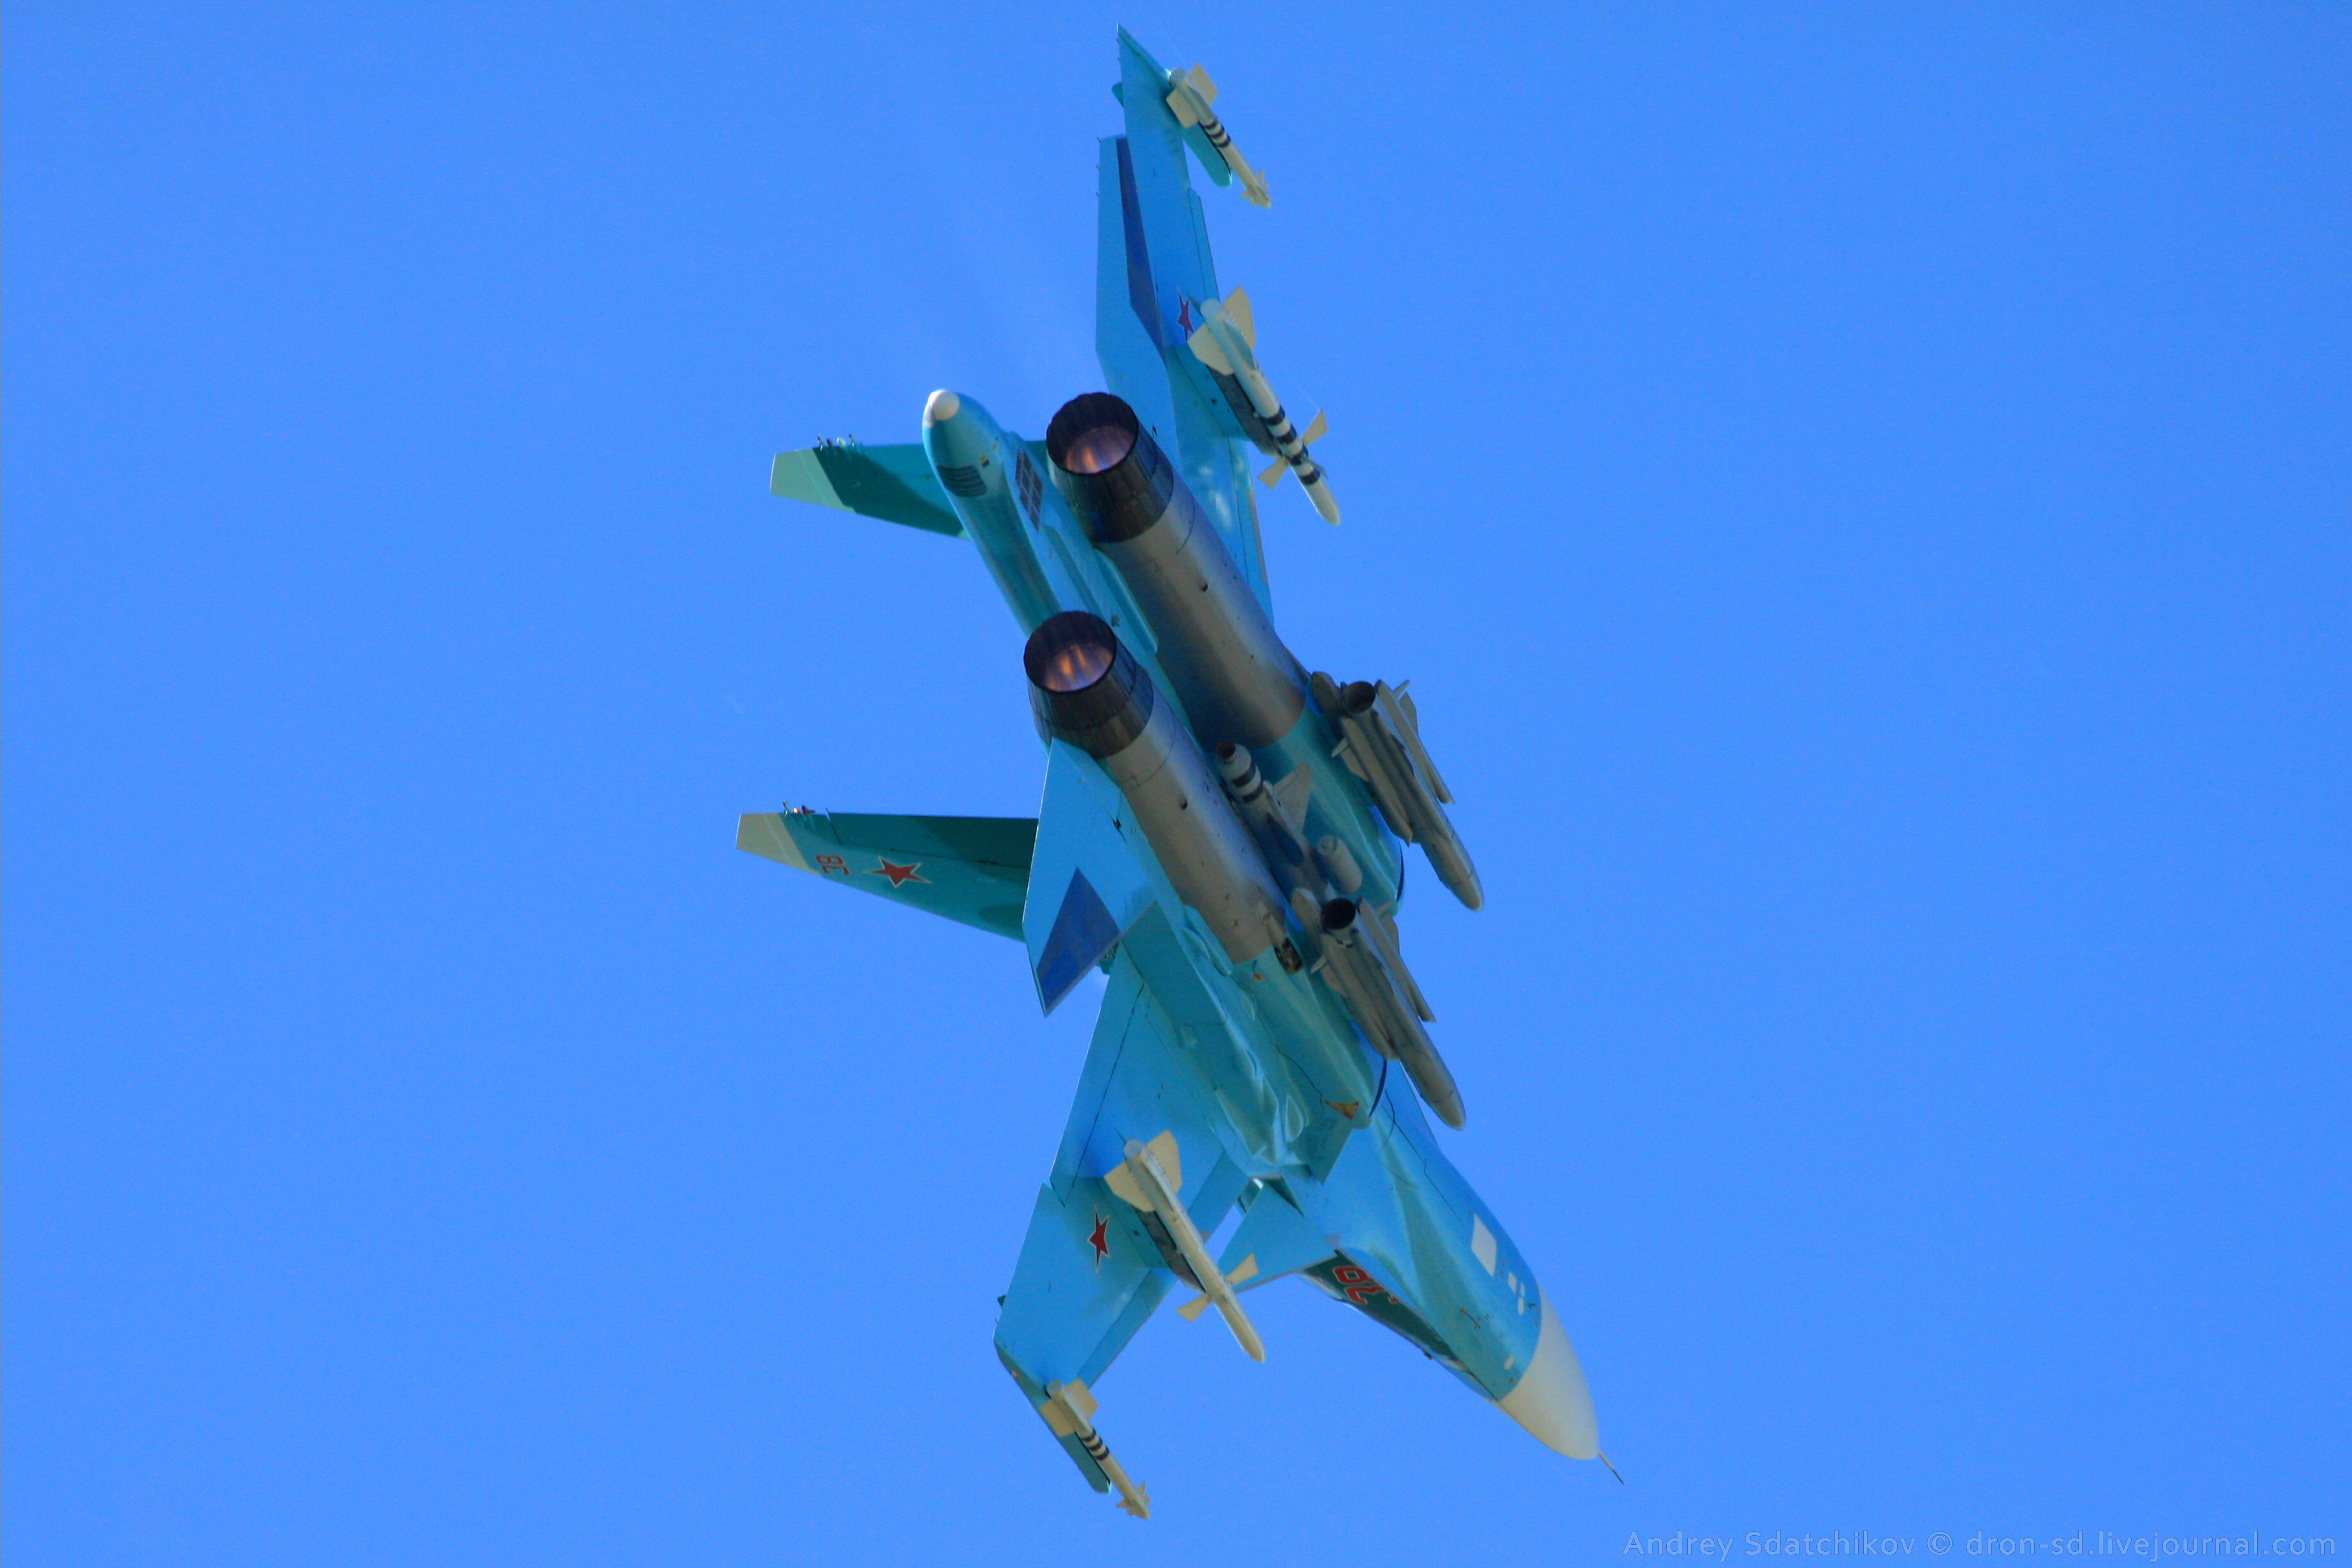 MAKS-2015 Air Show: Photos and Discussion - Page 3 0_122696_eb3a7e99_orig